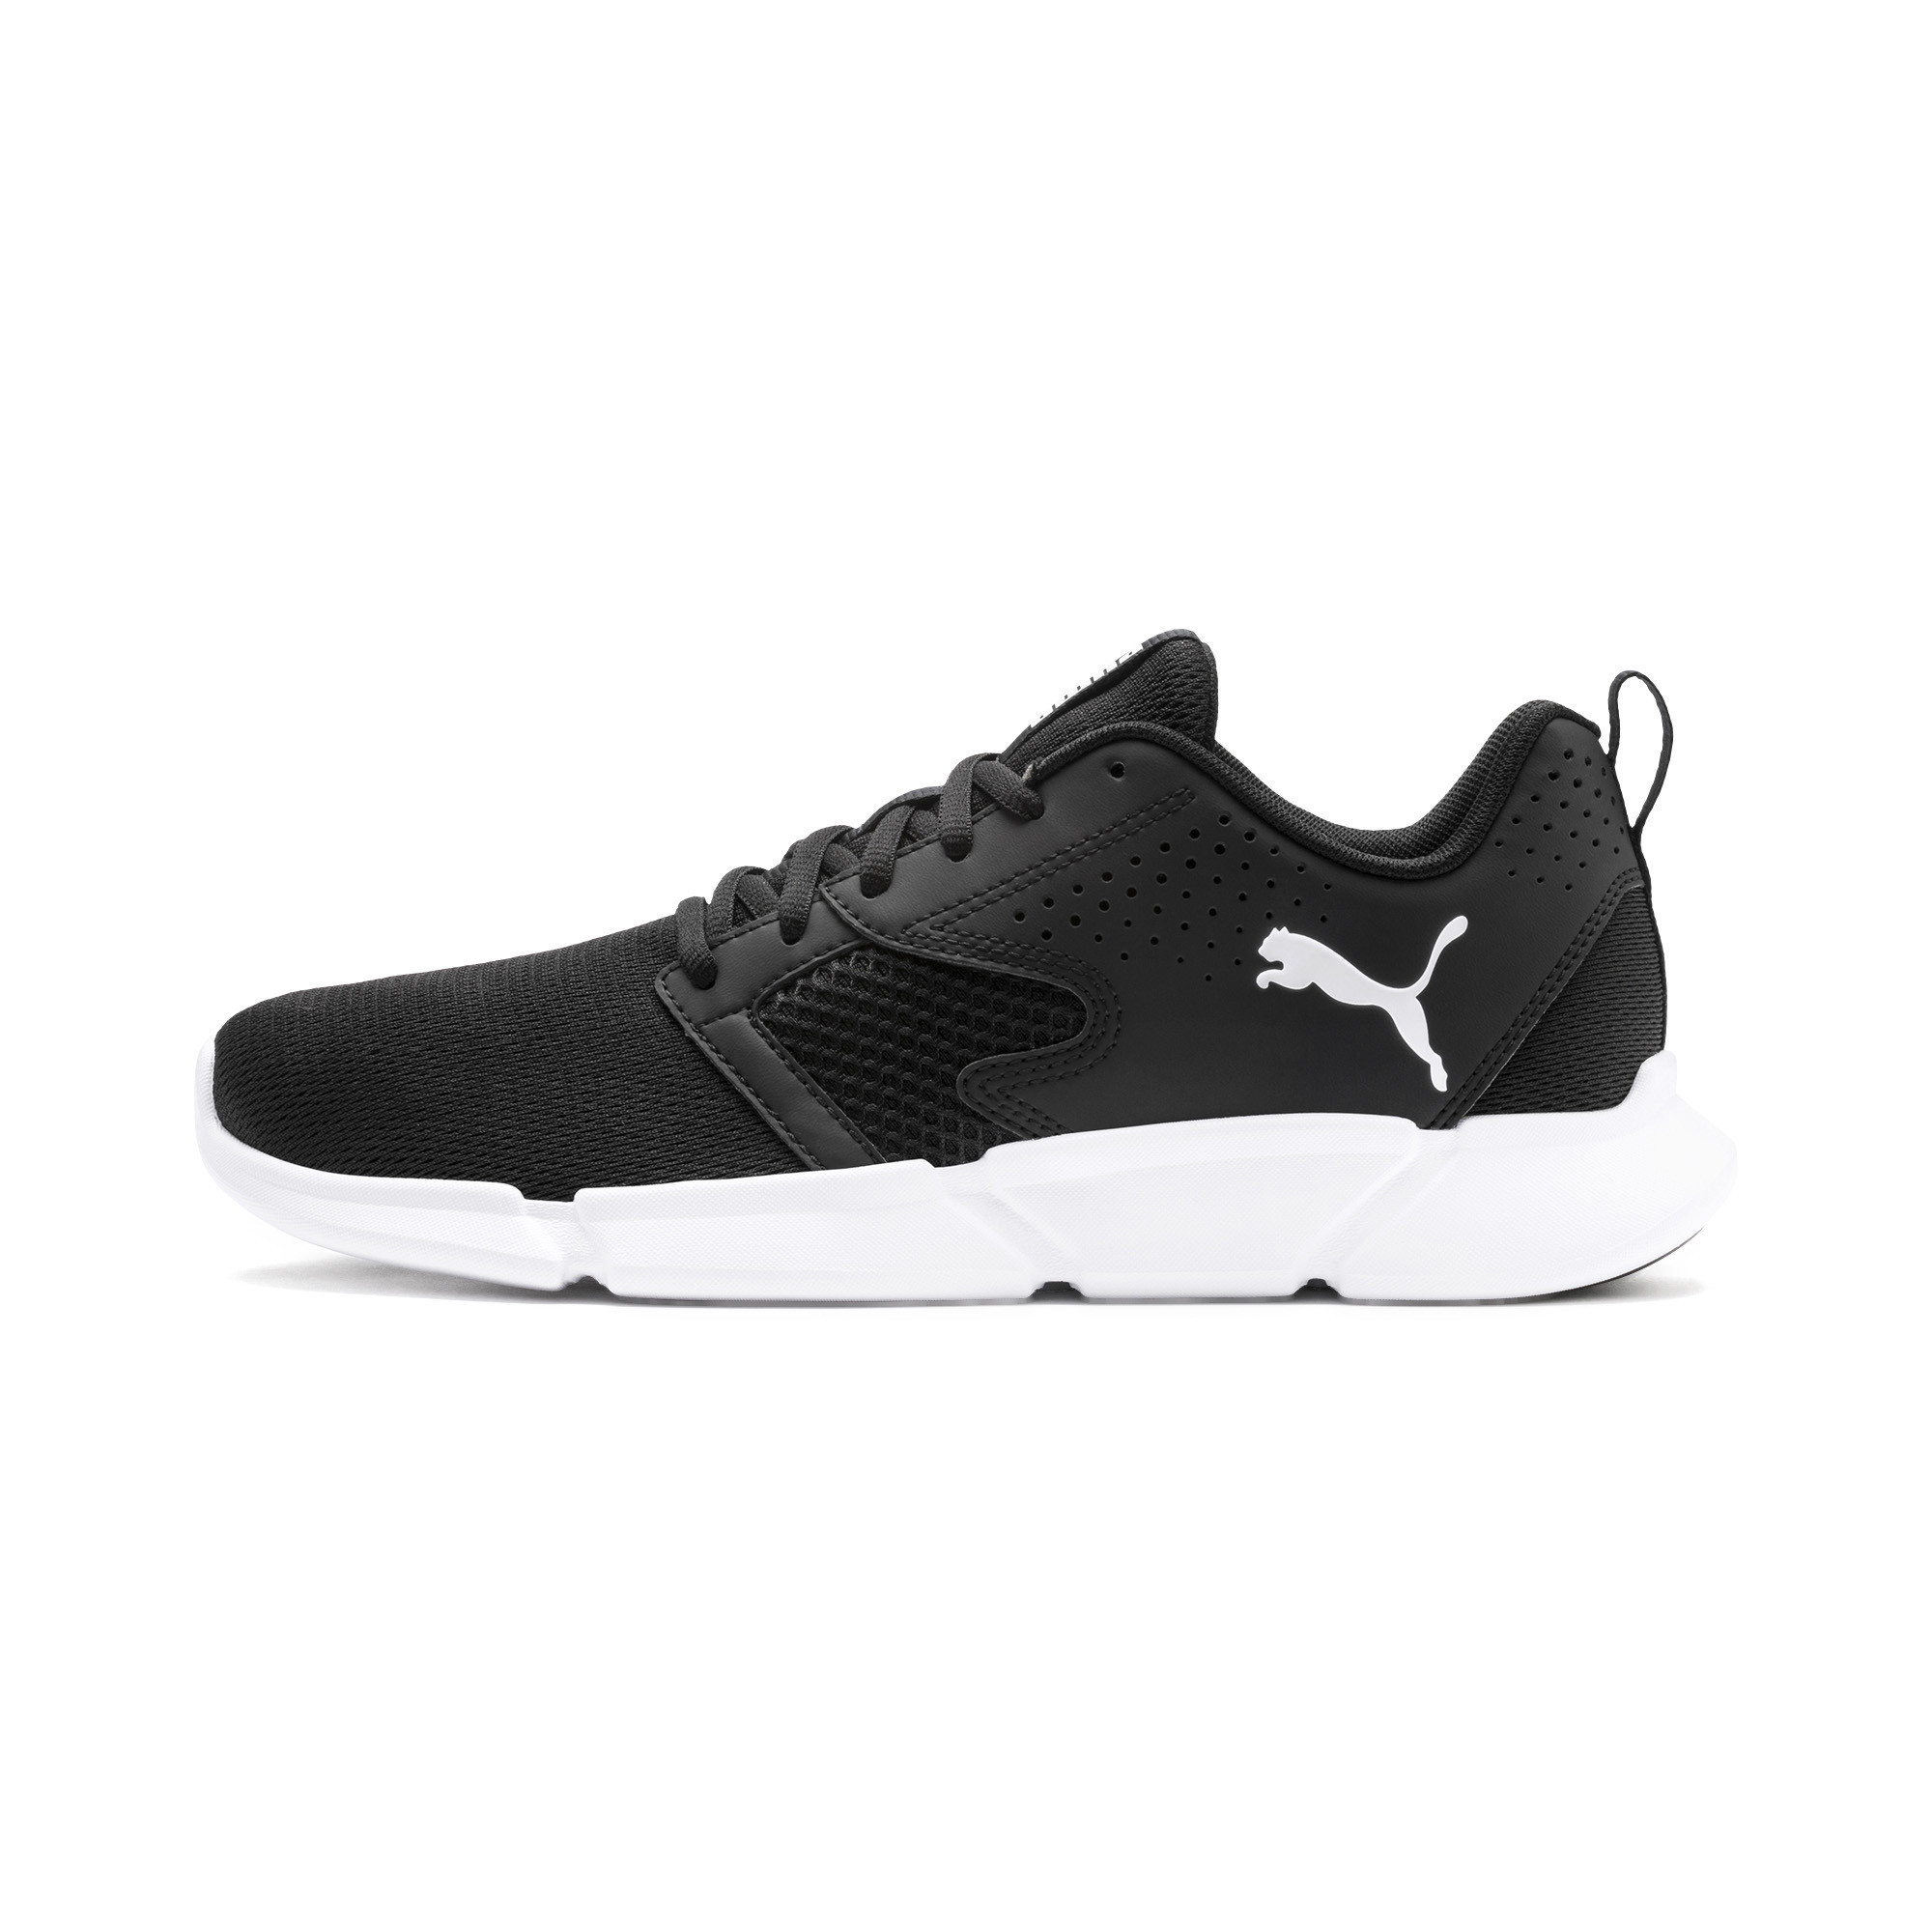 PUMA-INTERFLEX-Modern-Men-039-s-Sneakers-Unisex-Shoe-Running thumbnail 14